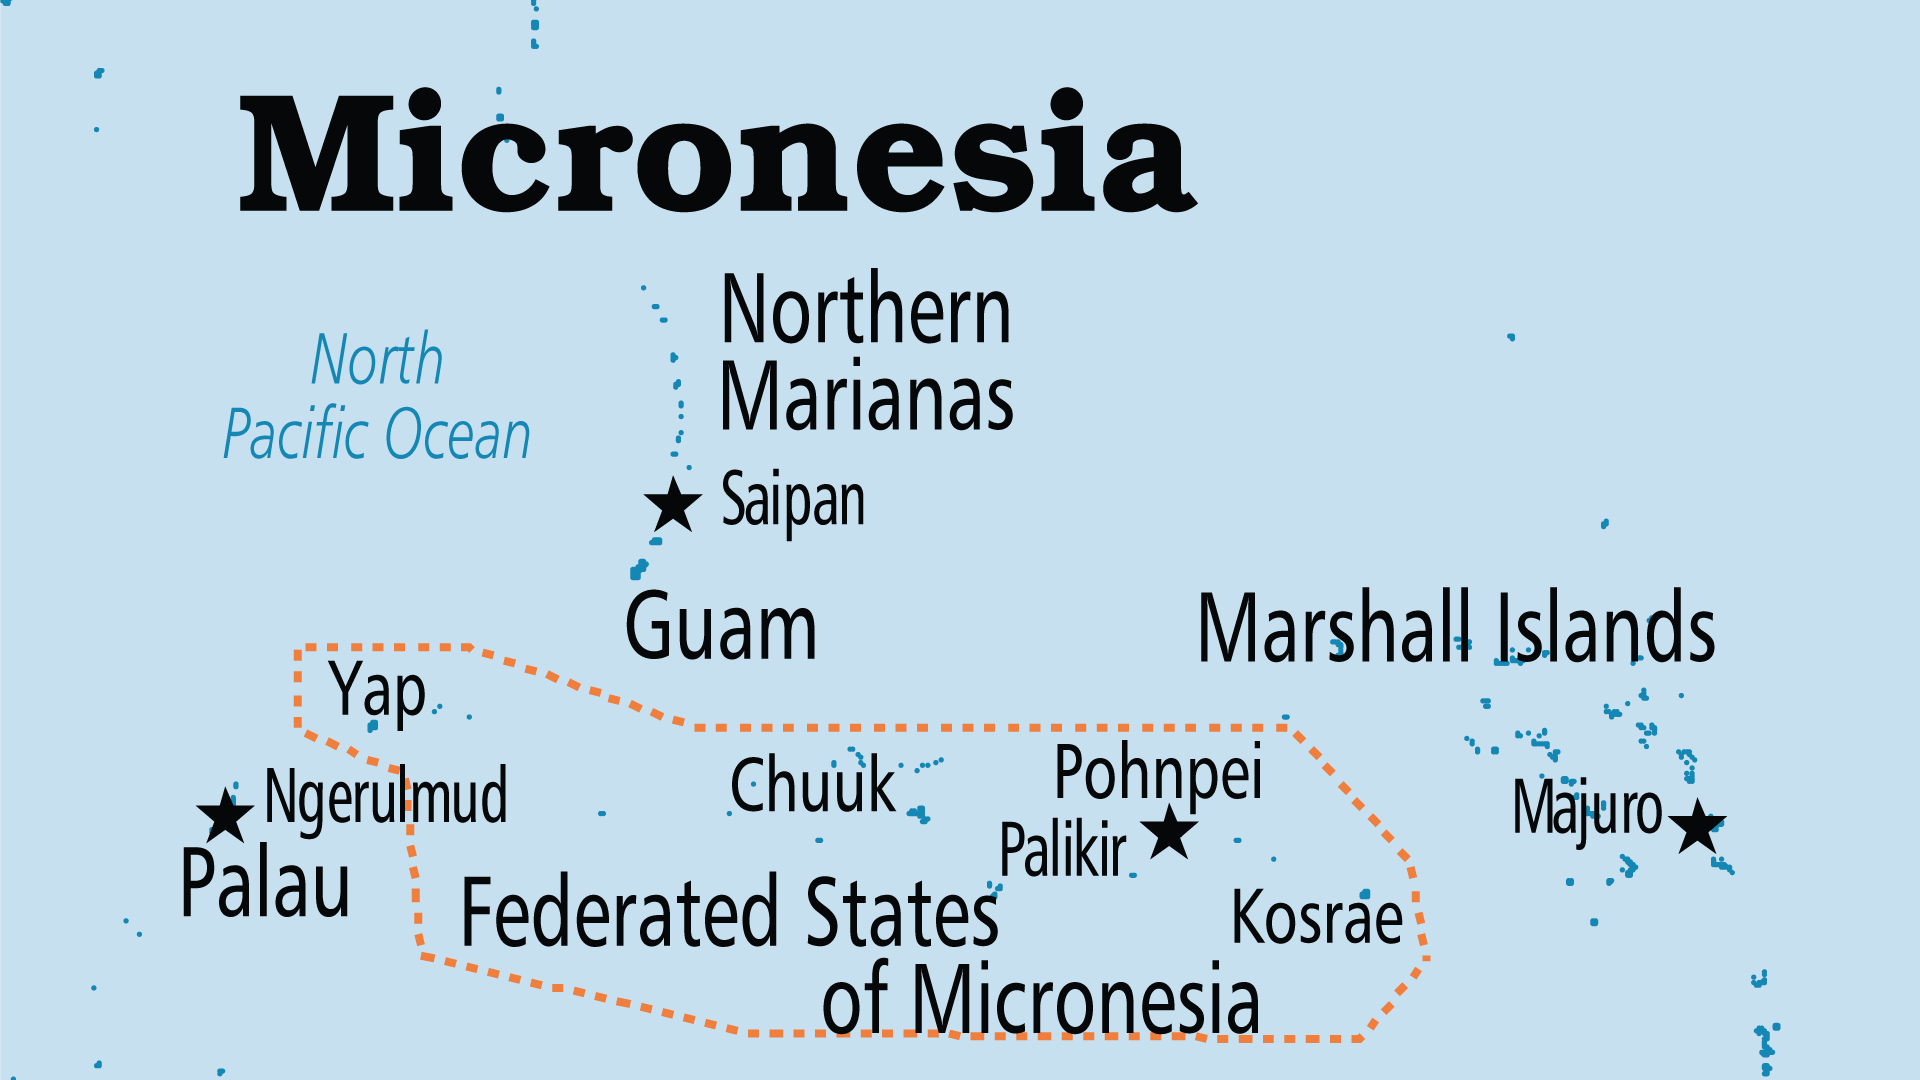 Map of Northern Mariana Islands